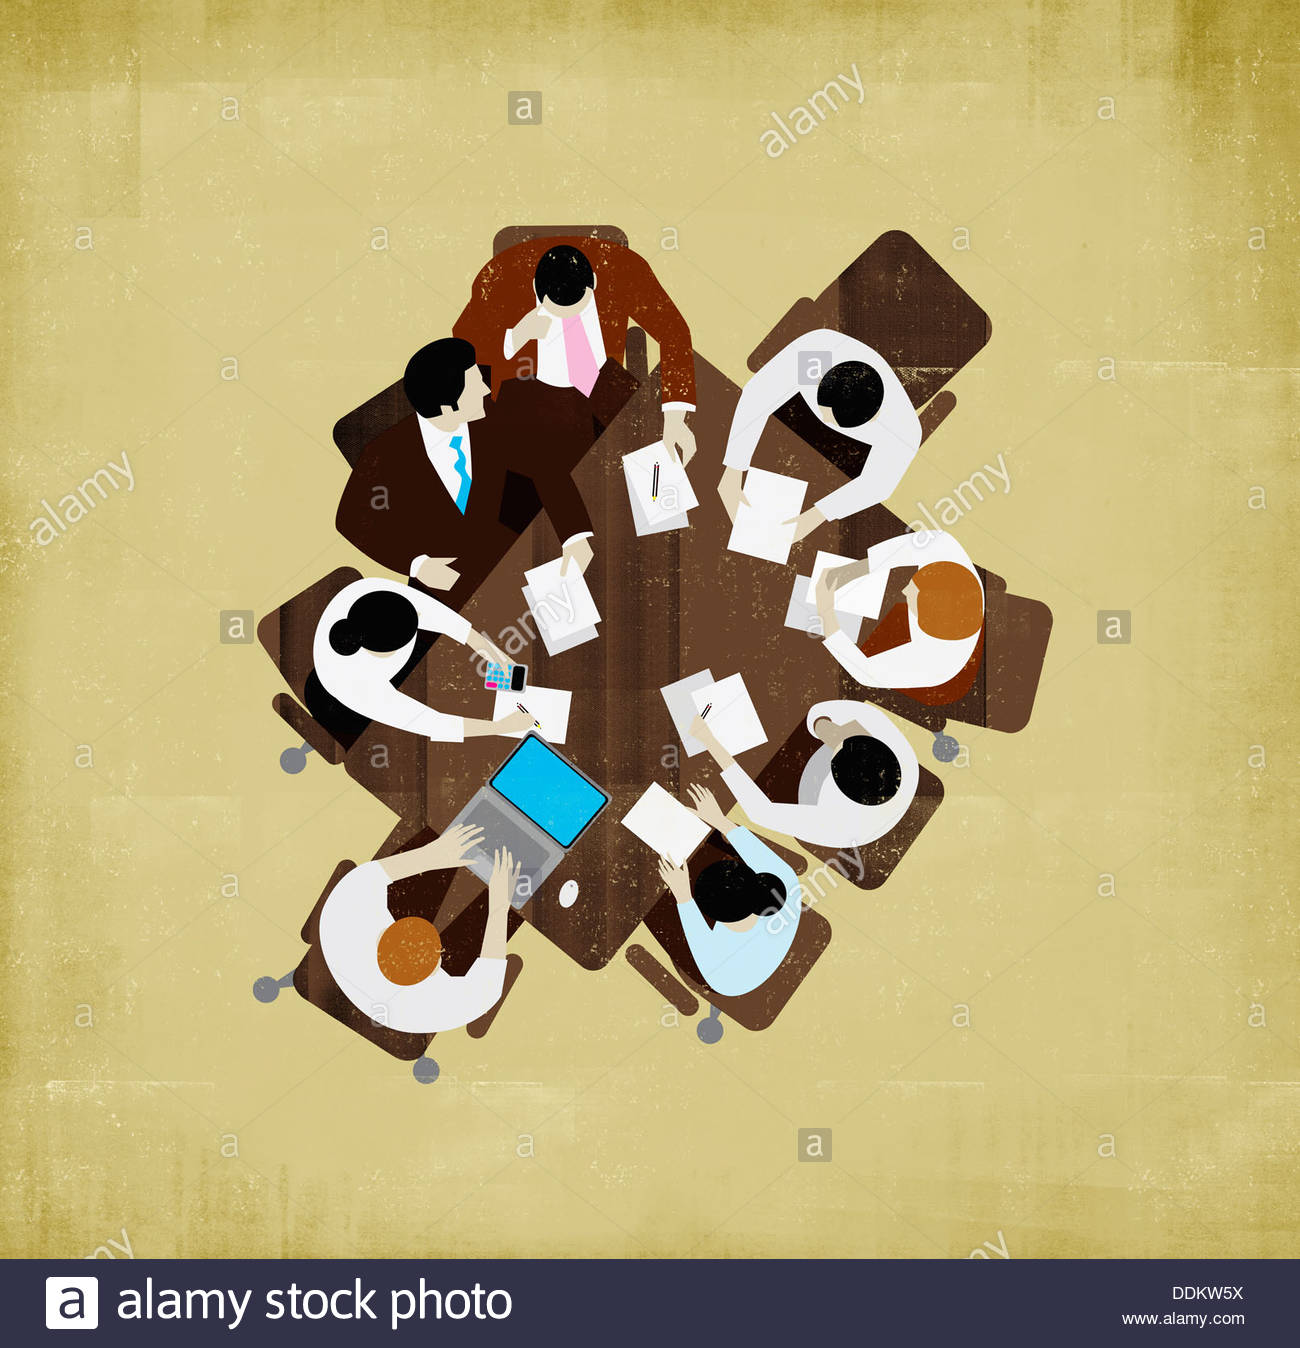 Overhead view of business people meeting around table - Stock Image